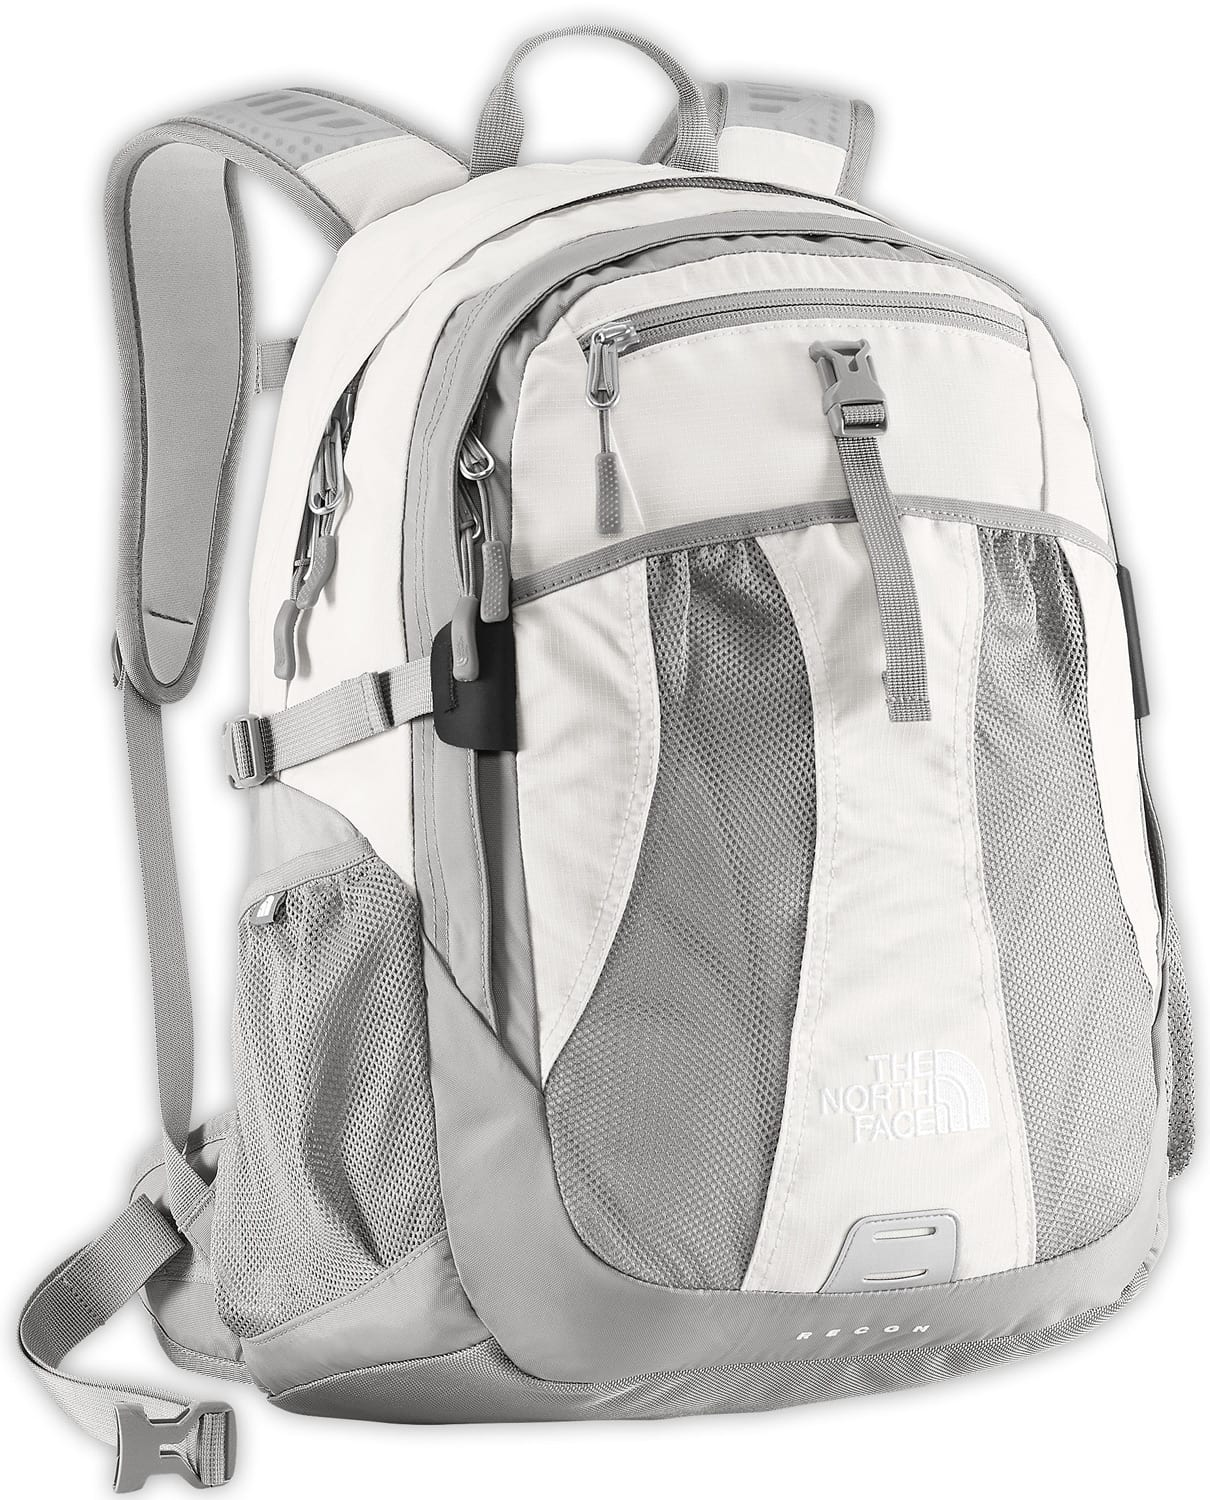 The North Face Recon Backpack Vaporous Grey Ripstop 28L